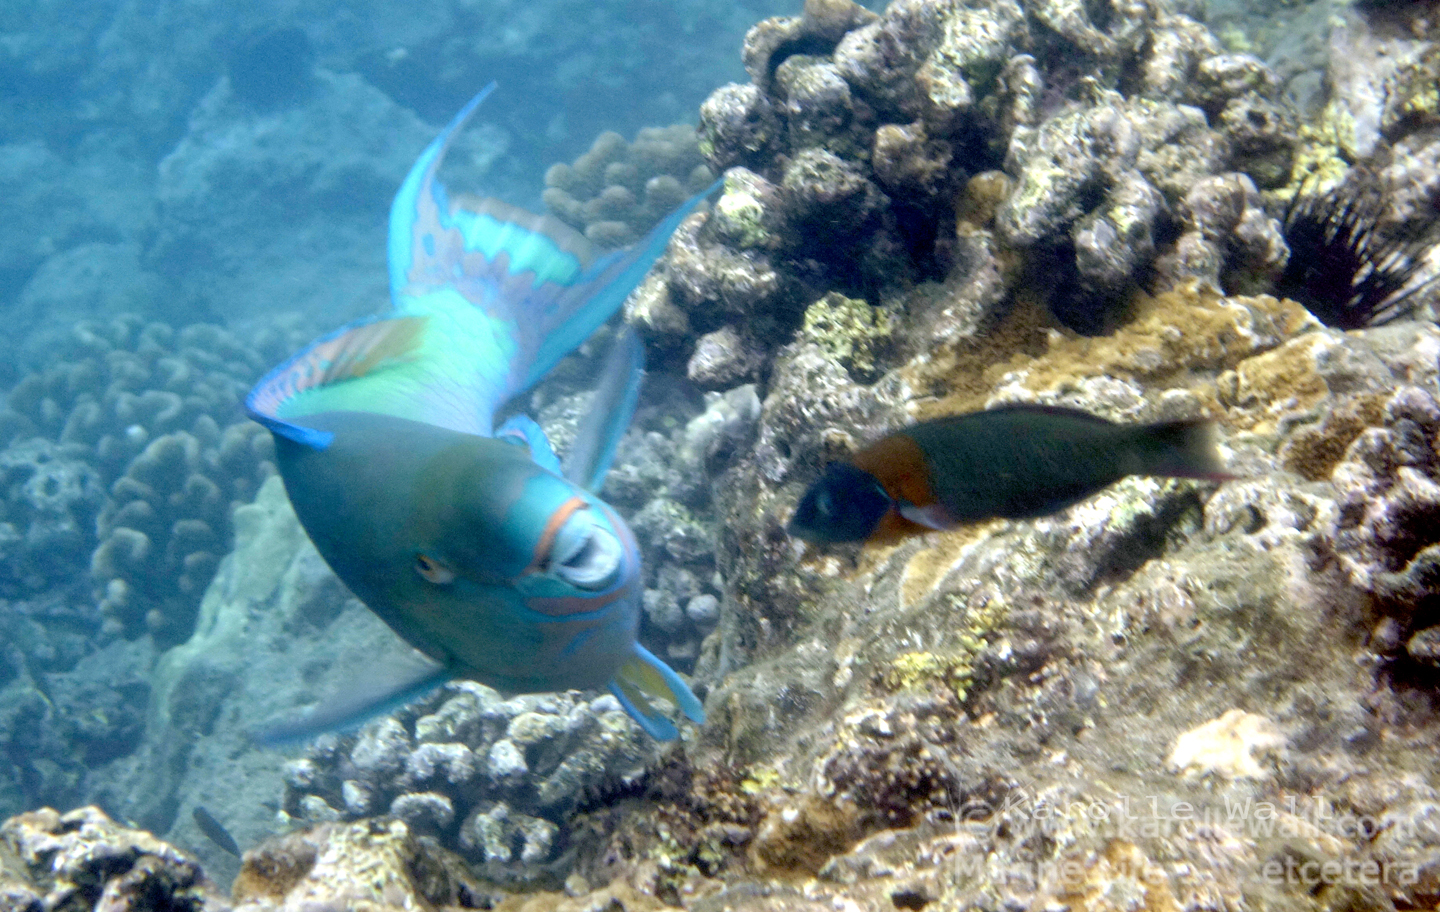 Male Ember or Redlip Parrotfish